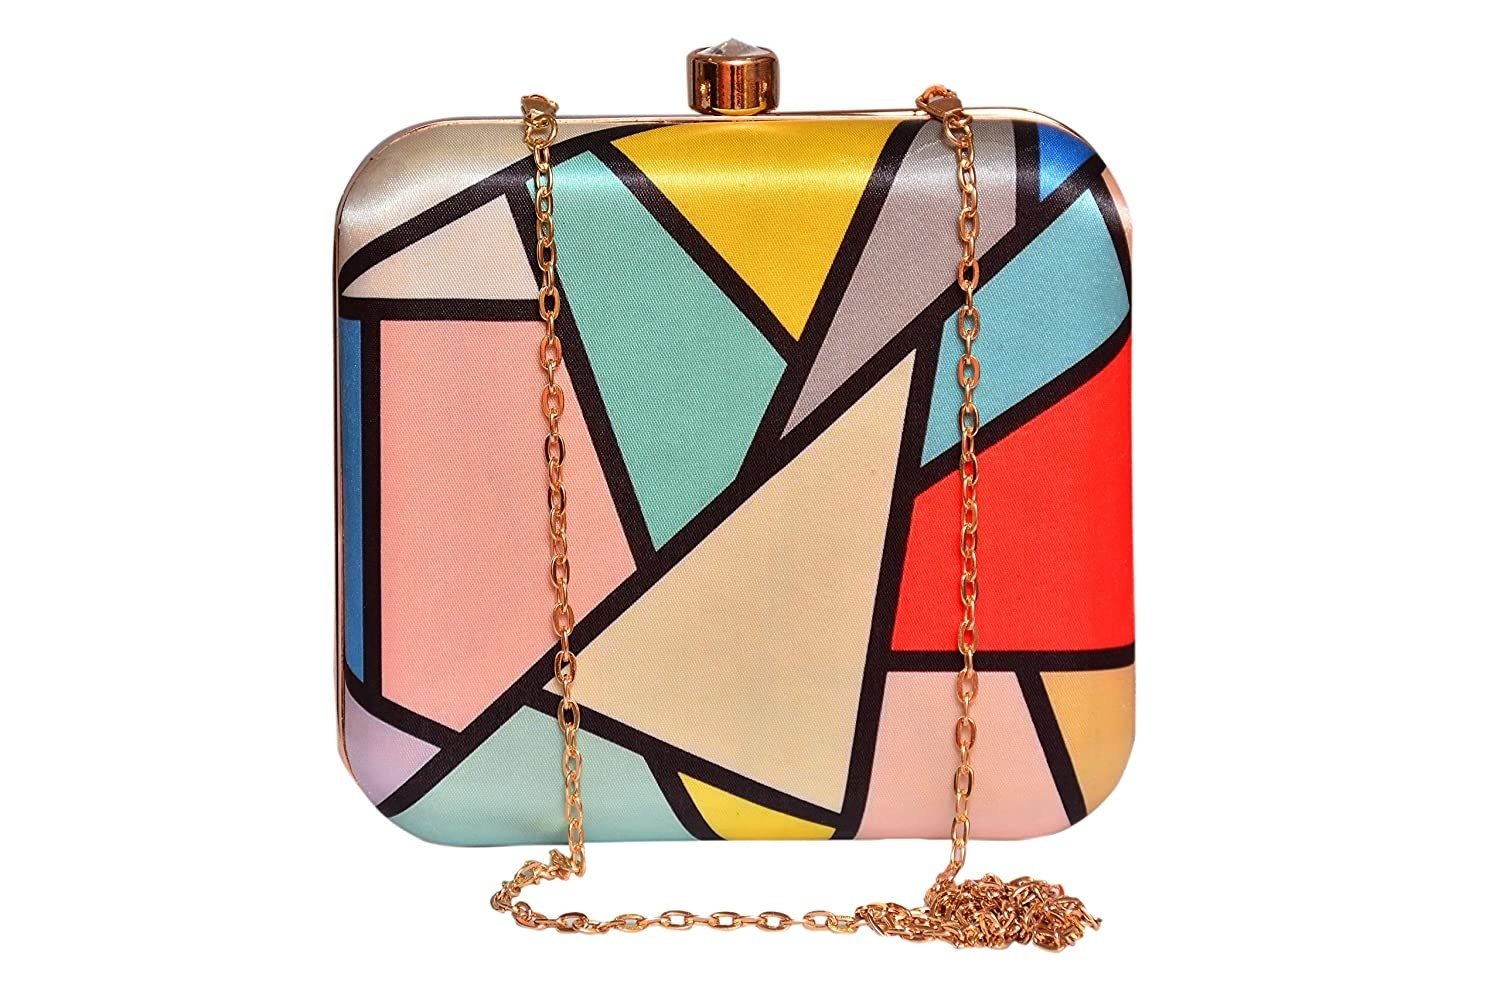 A clutch with an abstract geometrical pattern and a different colour in each shape.